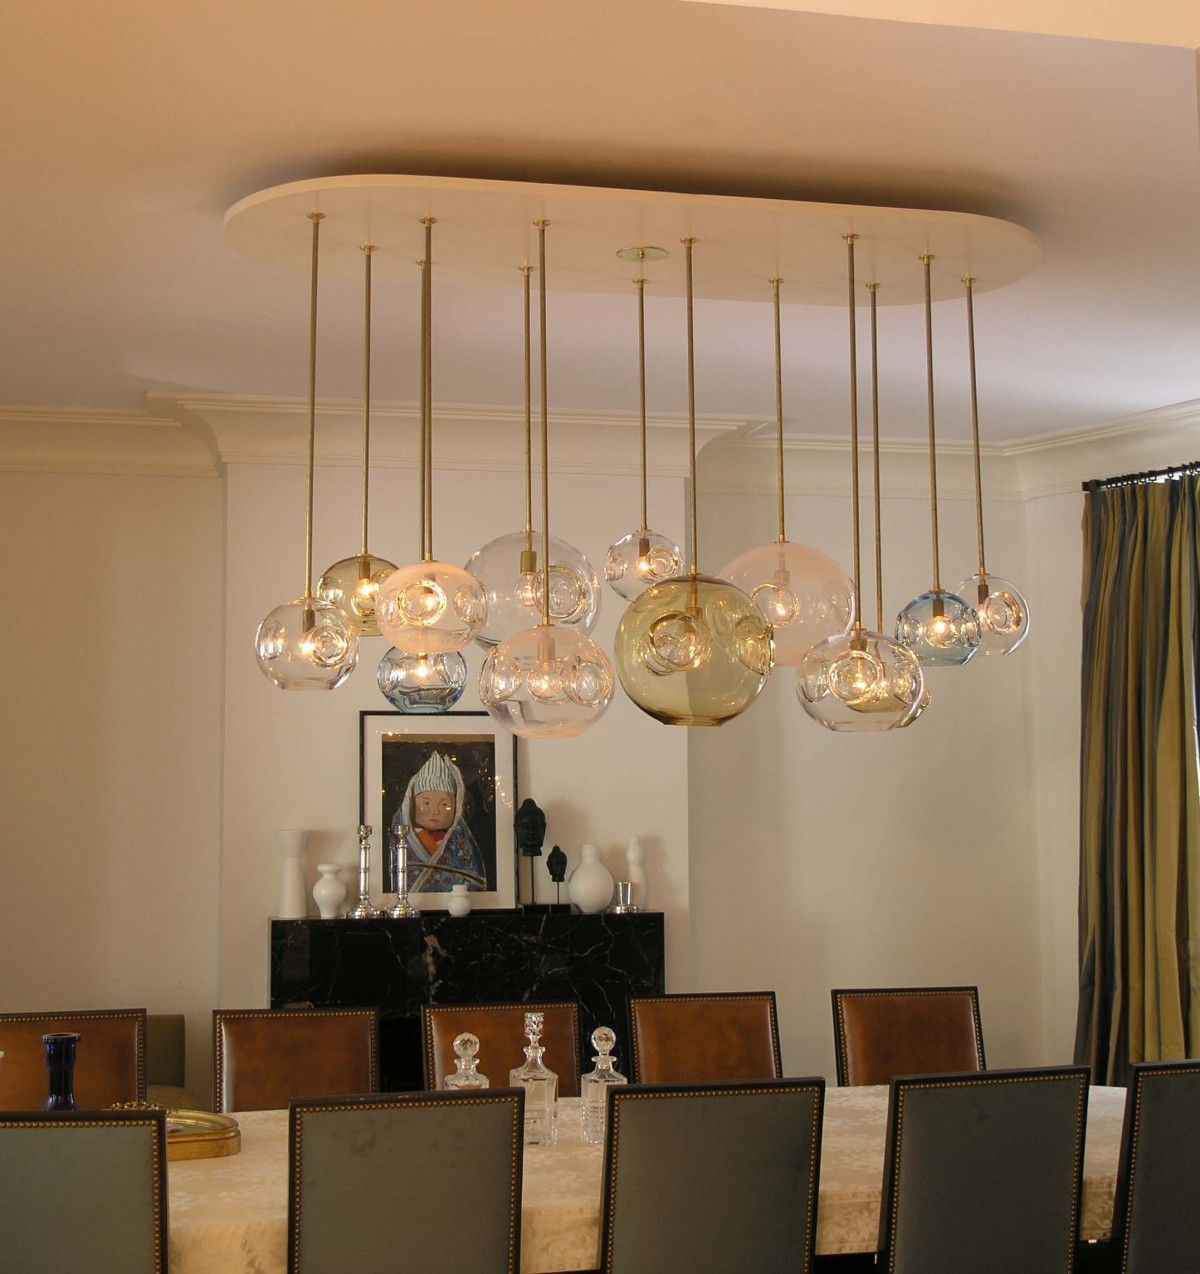 10 Easy Ways To Add A Mid Century Modern Style To Your Home Freshome Com Dining Room Light Fixtures Modern Dining Room Lighting Contemporary Dining Room Lighting